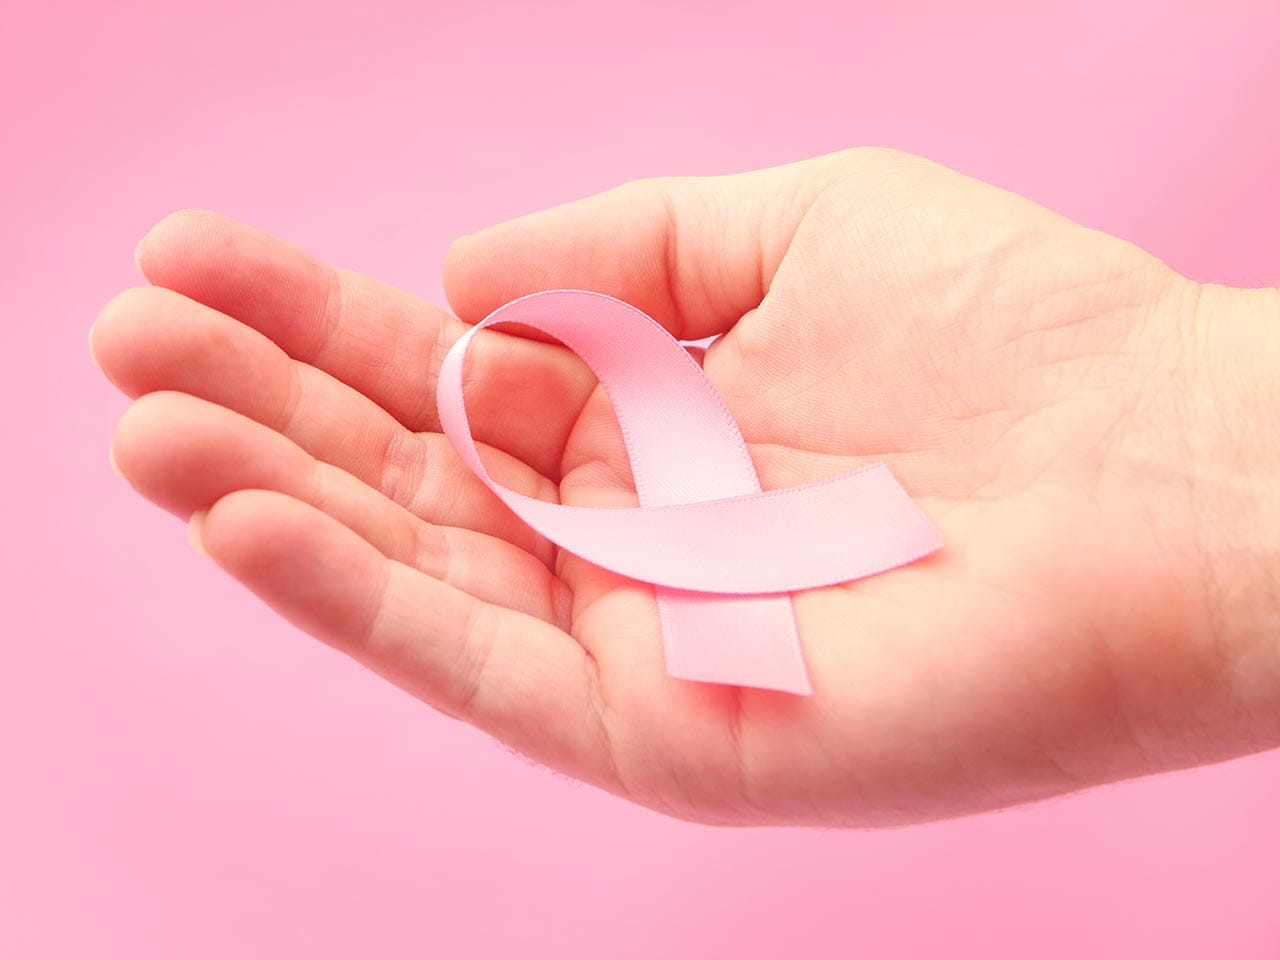 Hand holding breast cancer pink ribbon